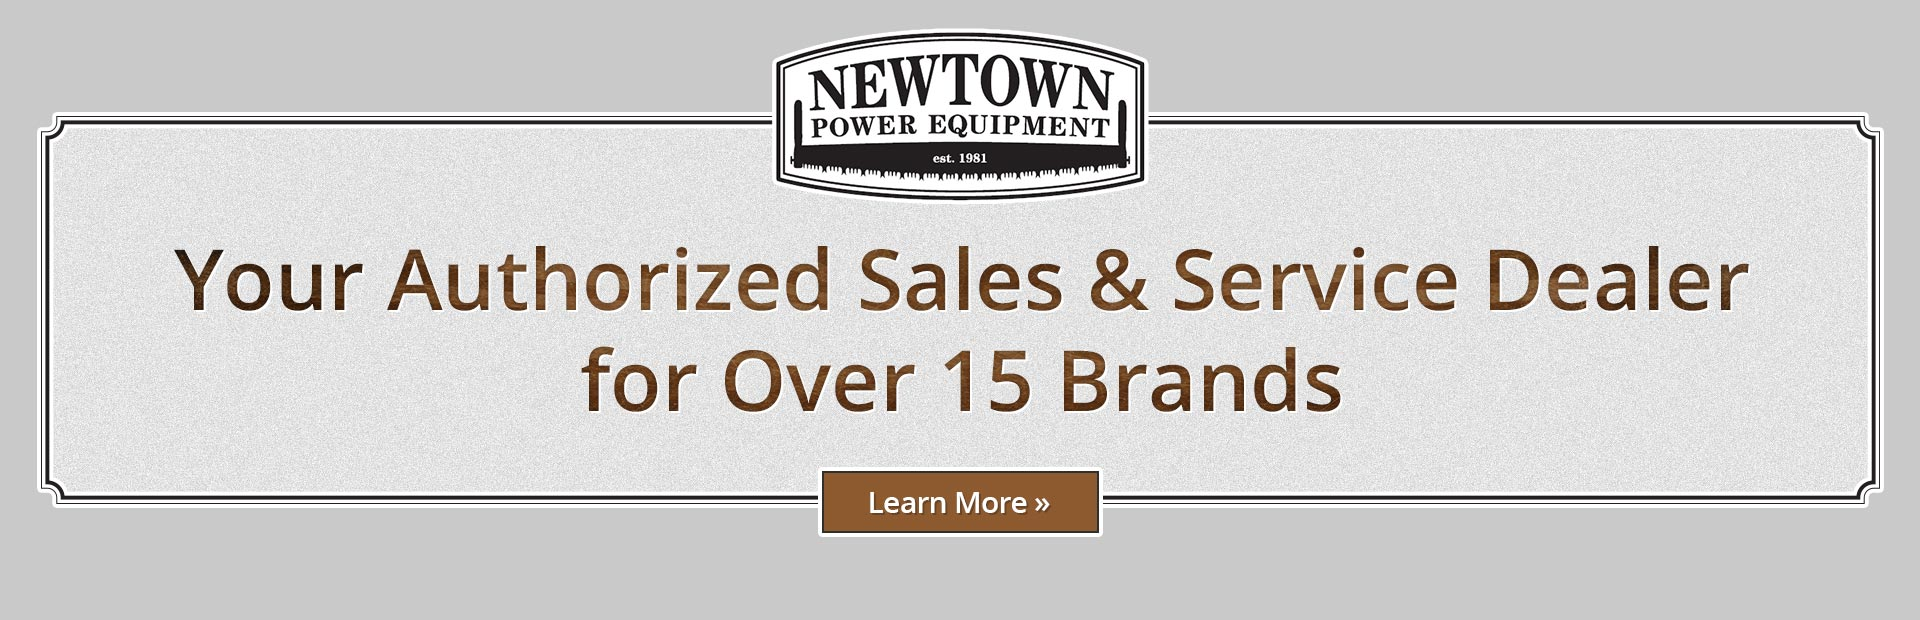 Newtown Power Equipment is your authorized sales and service dealer for over 15 brands!